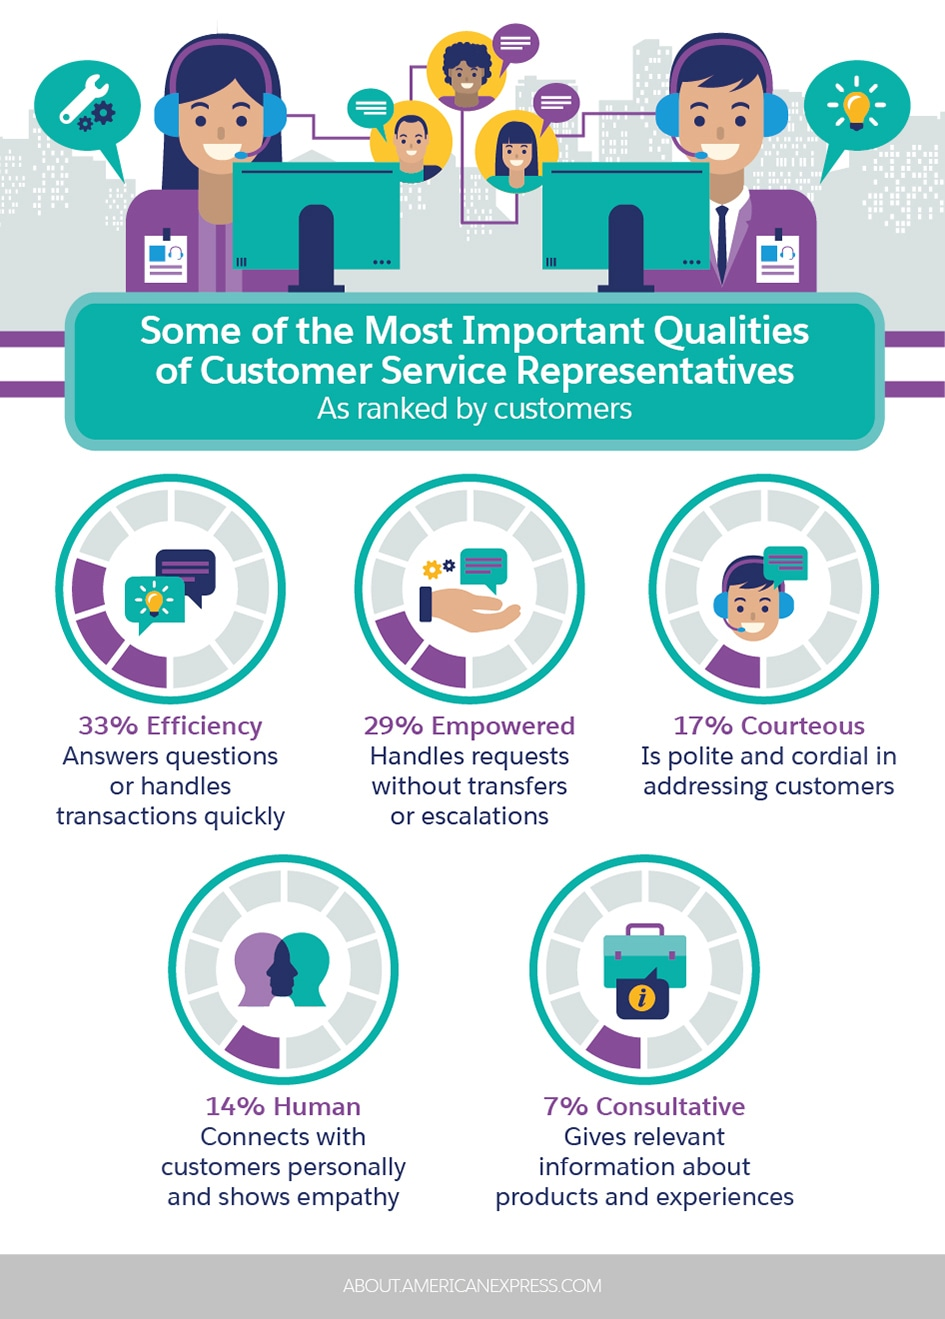 Some Of The Most Important Qualities Of Customer Service Representatives